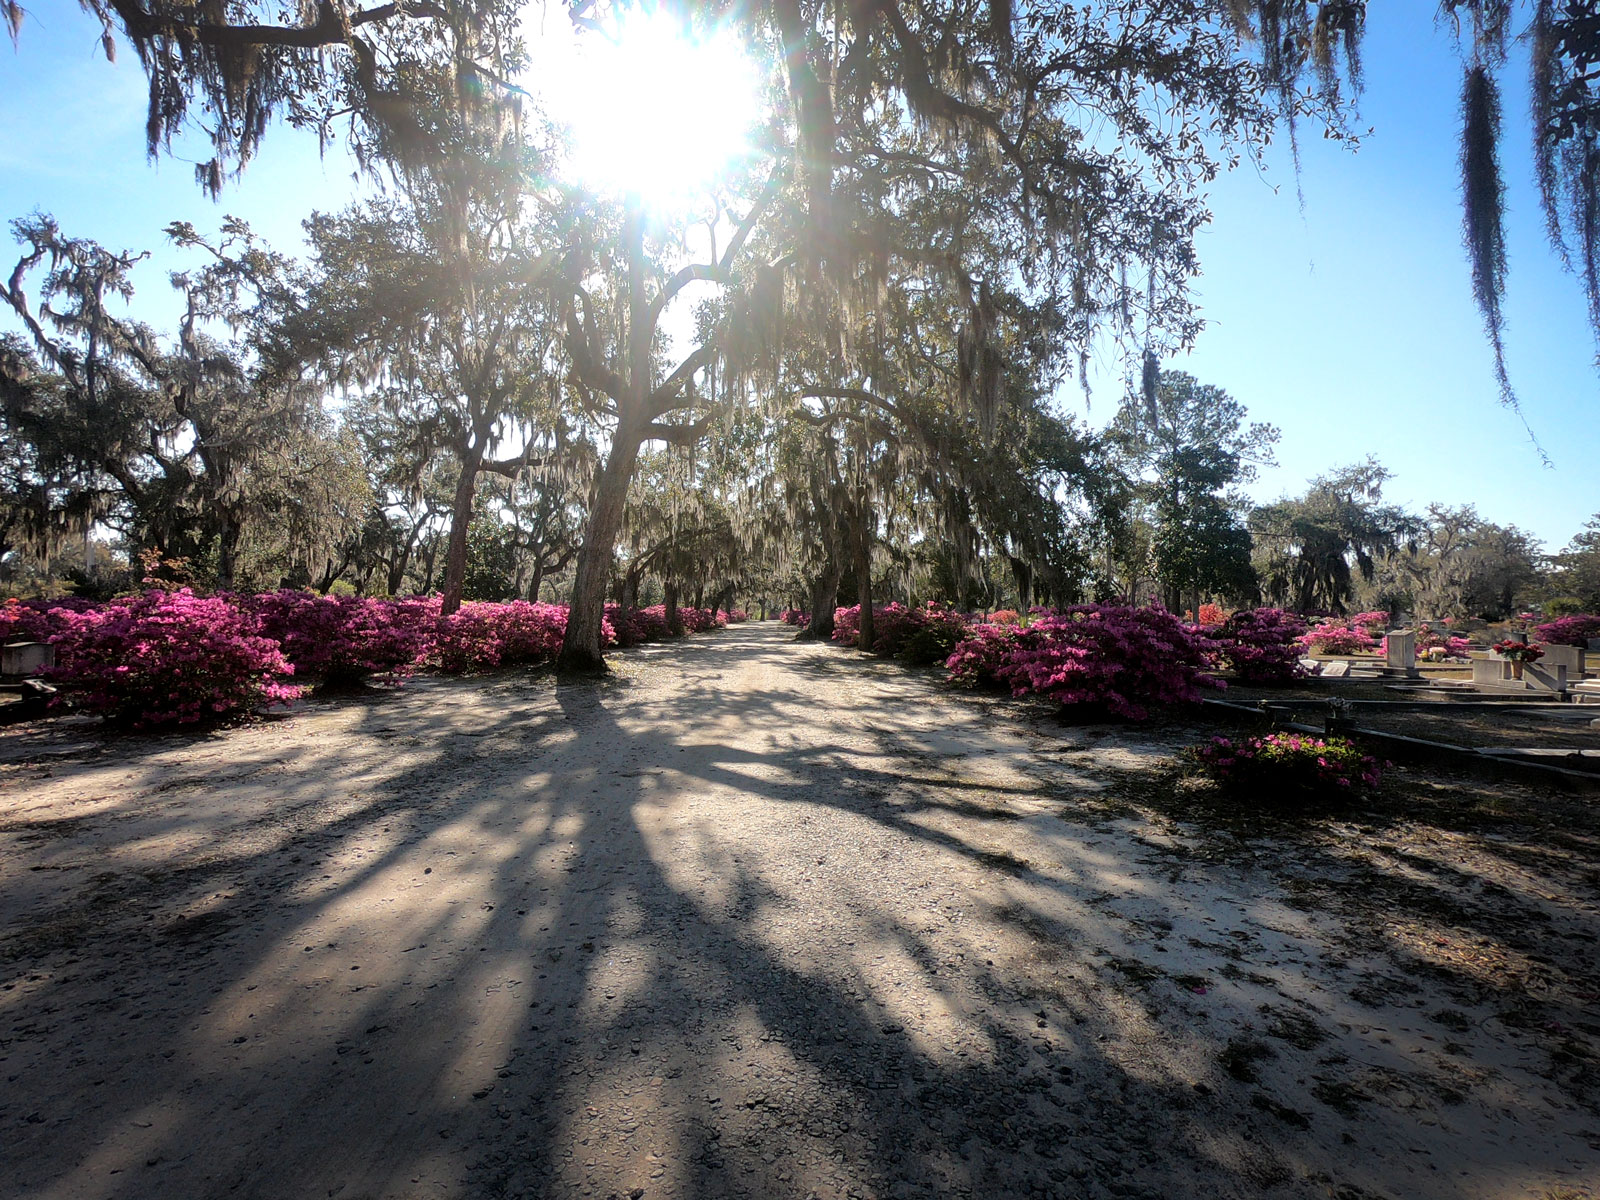 Narrow road with Spanish moss draped live oaks and blooming azaleas in Bonaventure Cemetery, Savannah, Georgia